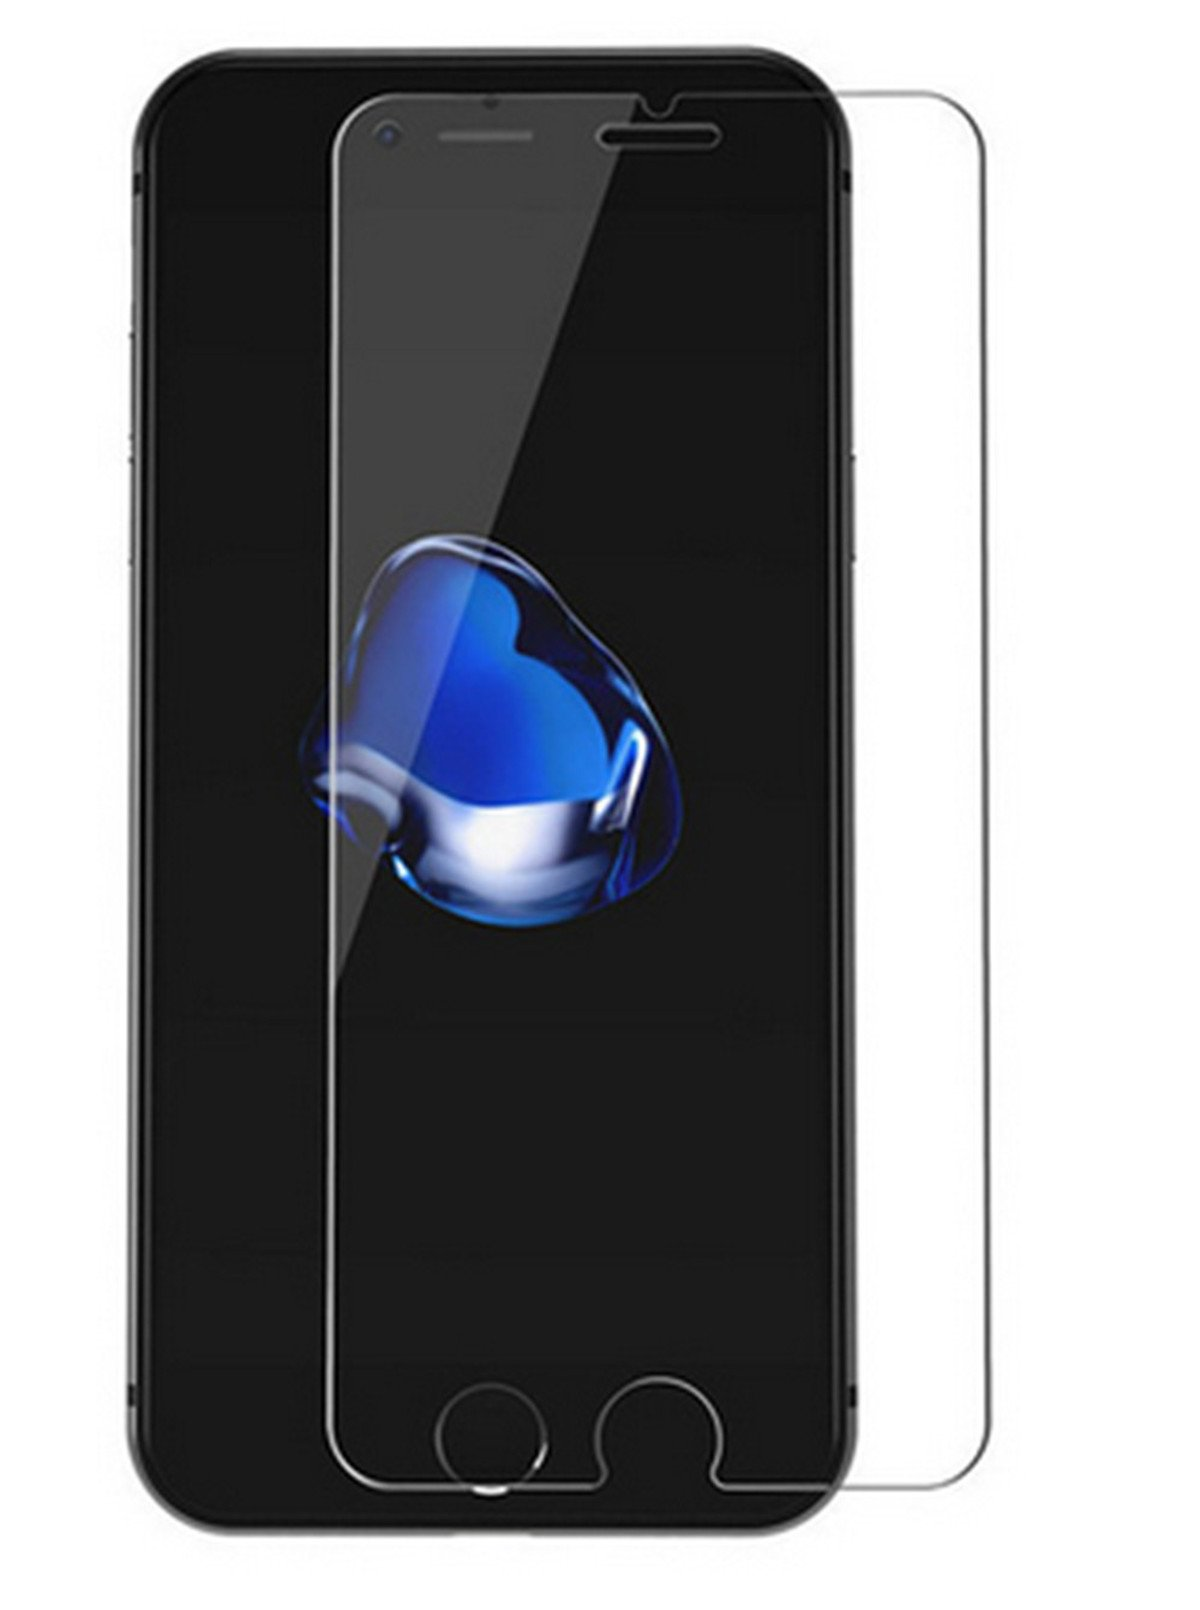 [2-PACK] For iPhone 7 Plus/ iPhone 8 Plus 5.5 Inch Tempered Glass Screen Protector [Anti fingerprint][Anti shock] Screen Protector Tempered Glass by Abtory (Image #3)